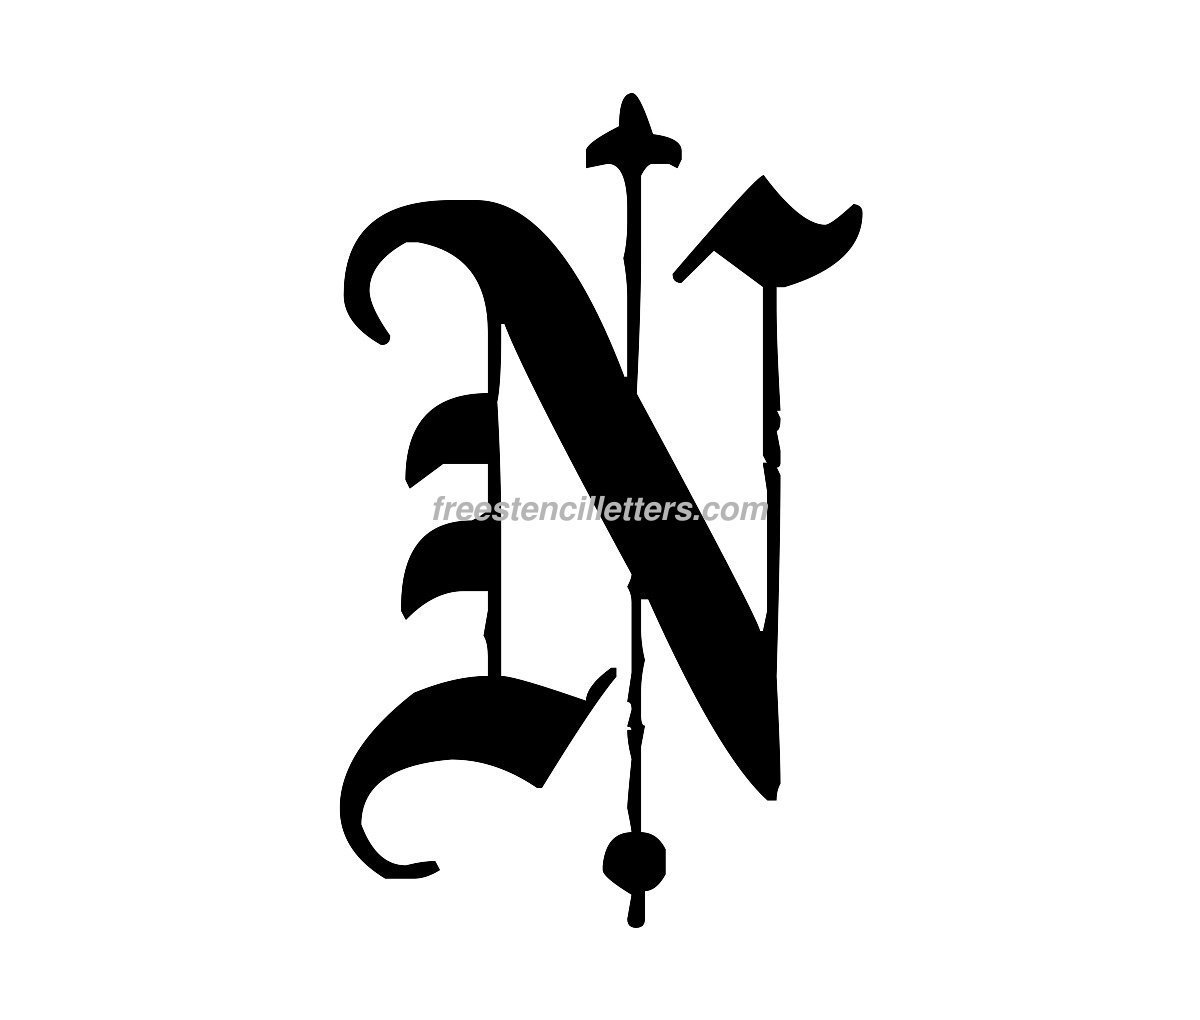 Free Old English Stencil Letters 49